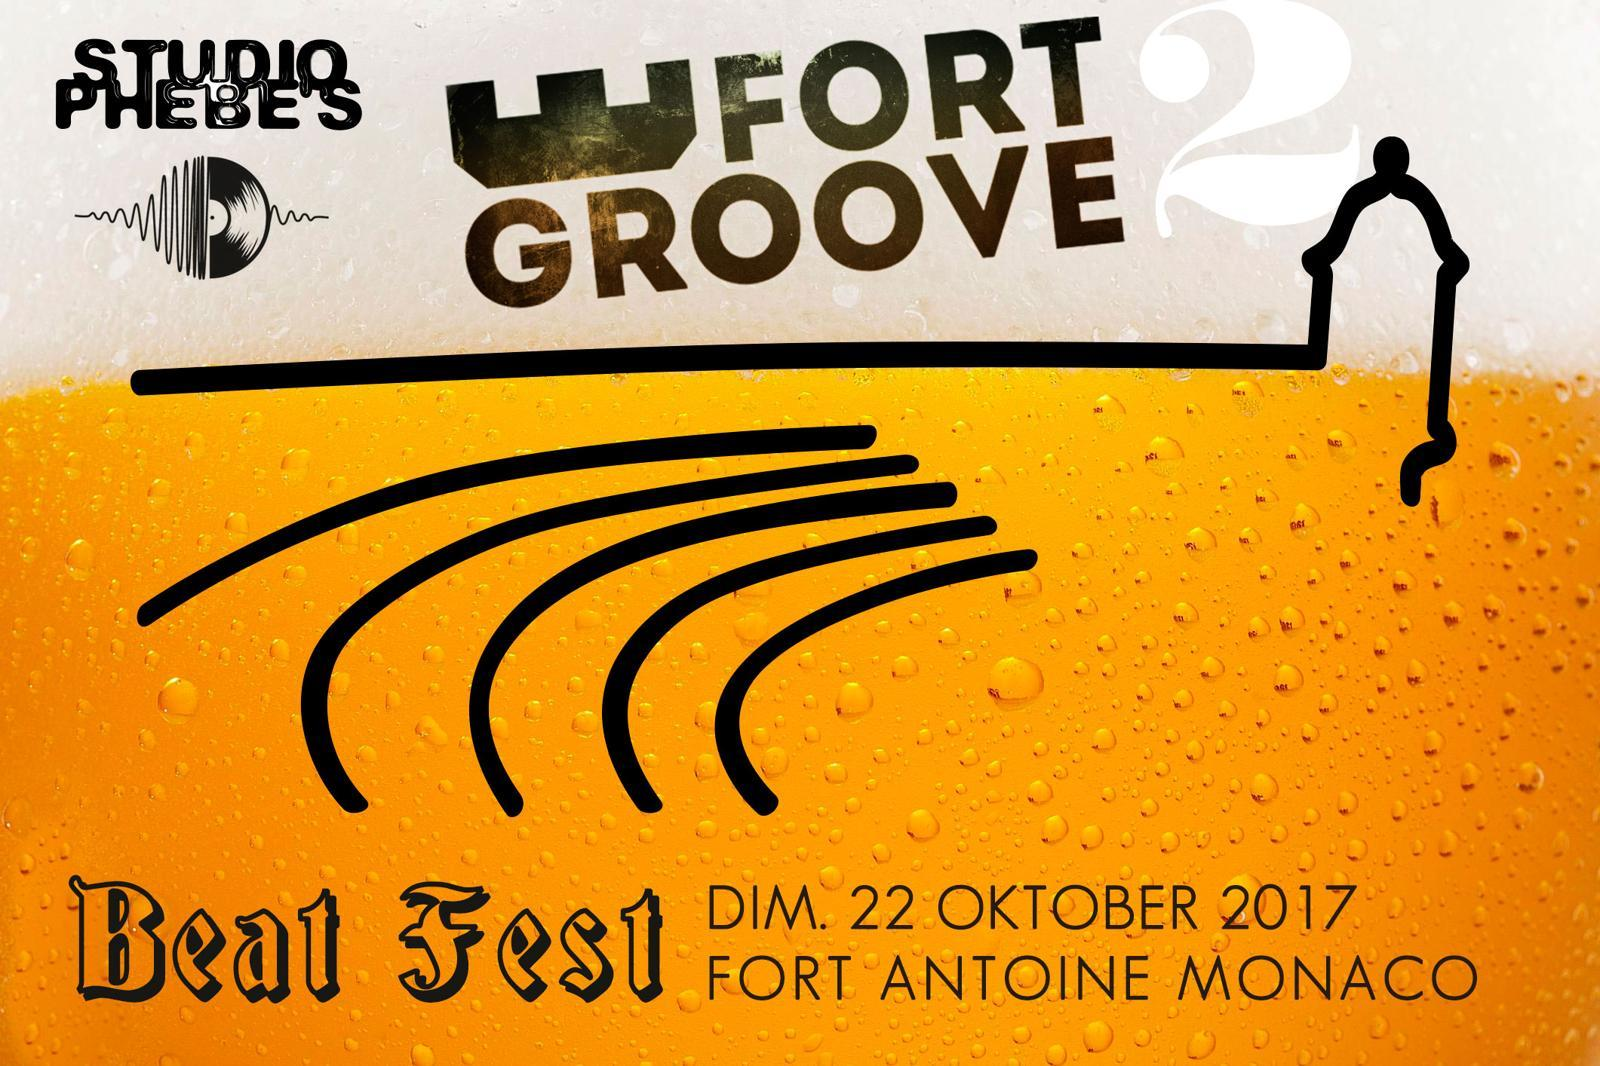 Fort Groove 2